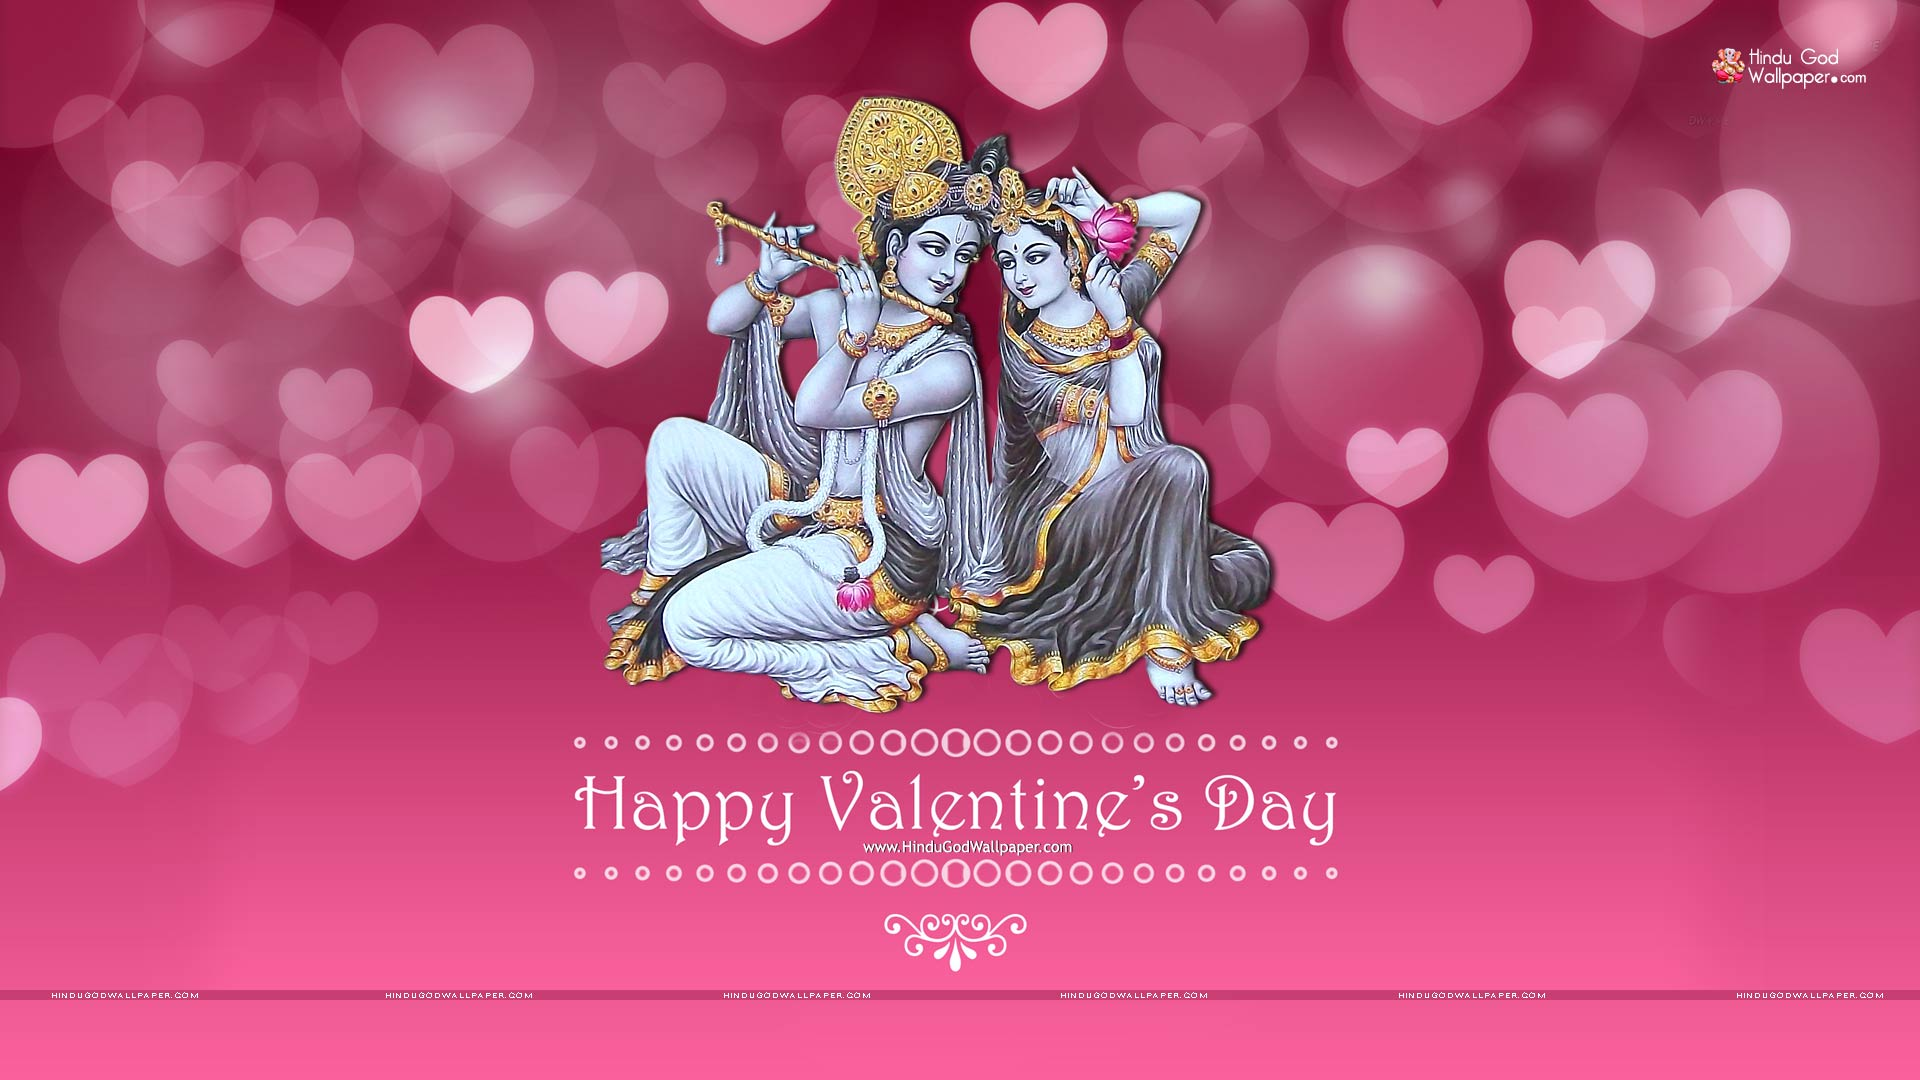 1080p Valentine Day Hd Wallpaper Full Size Free Download